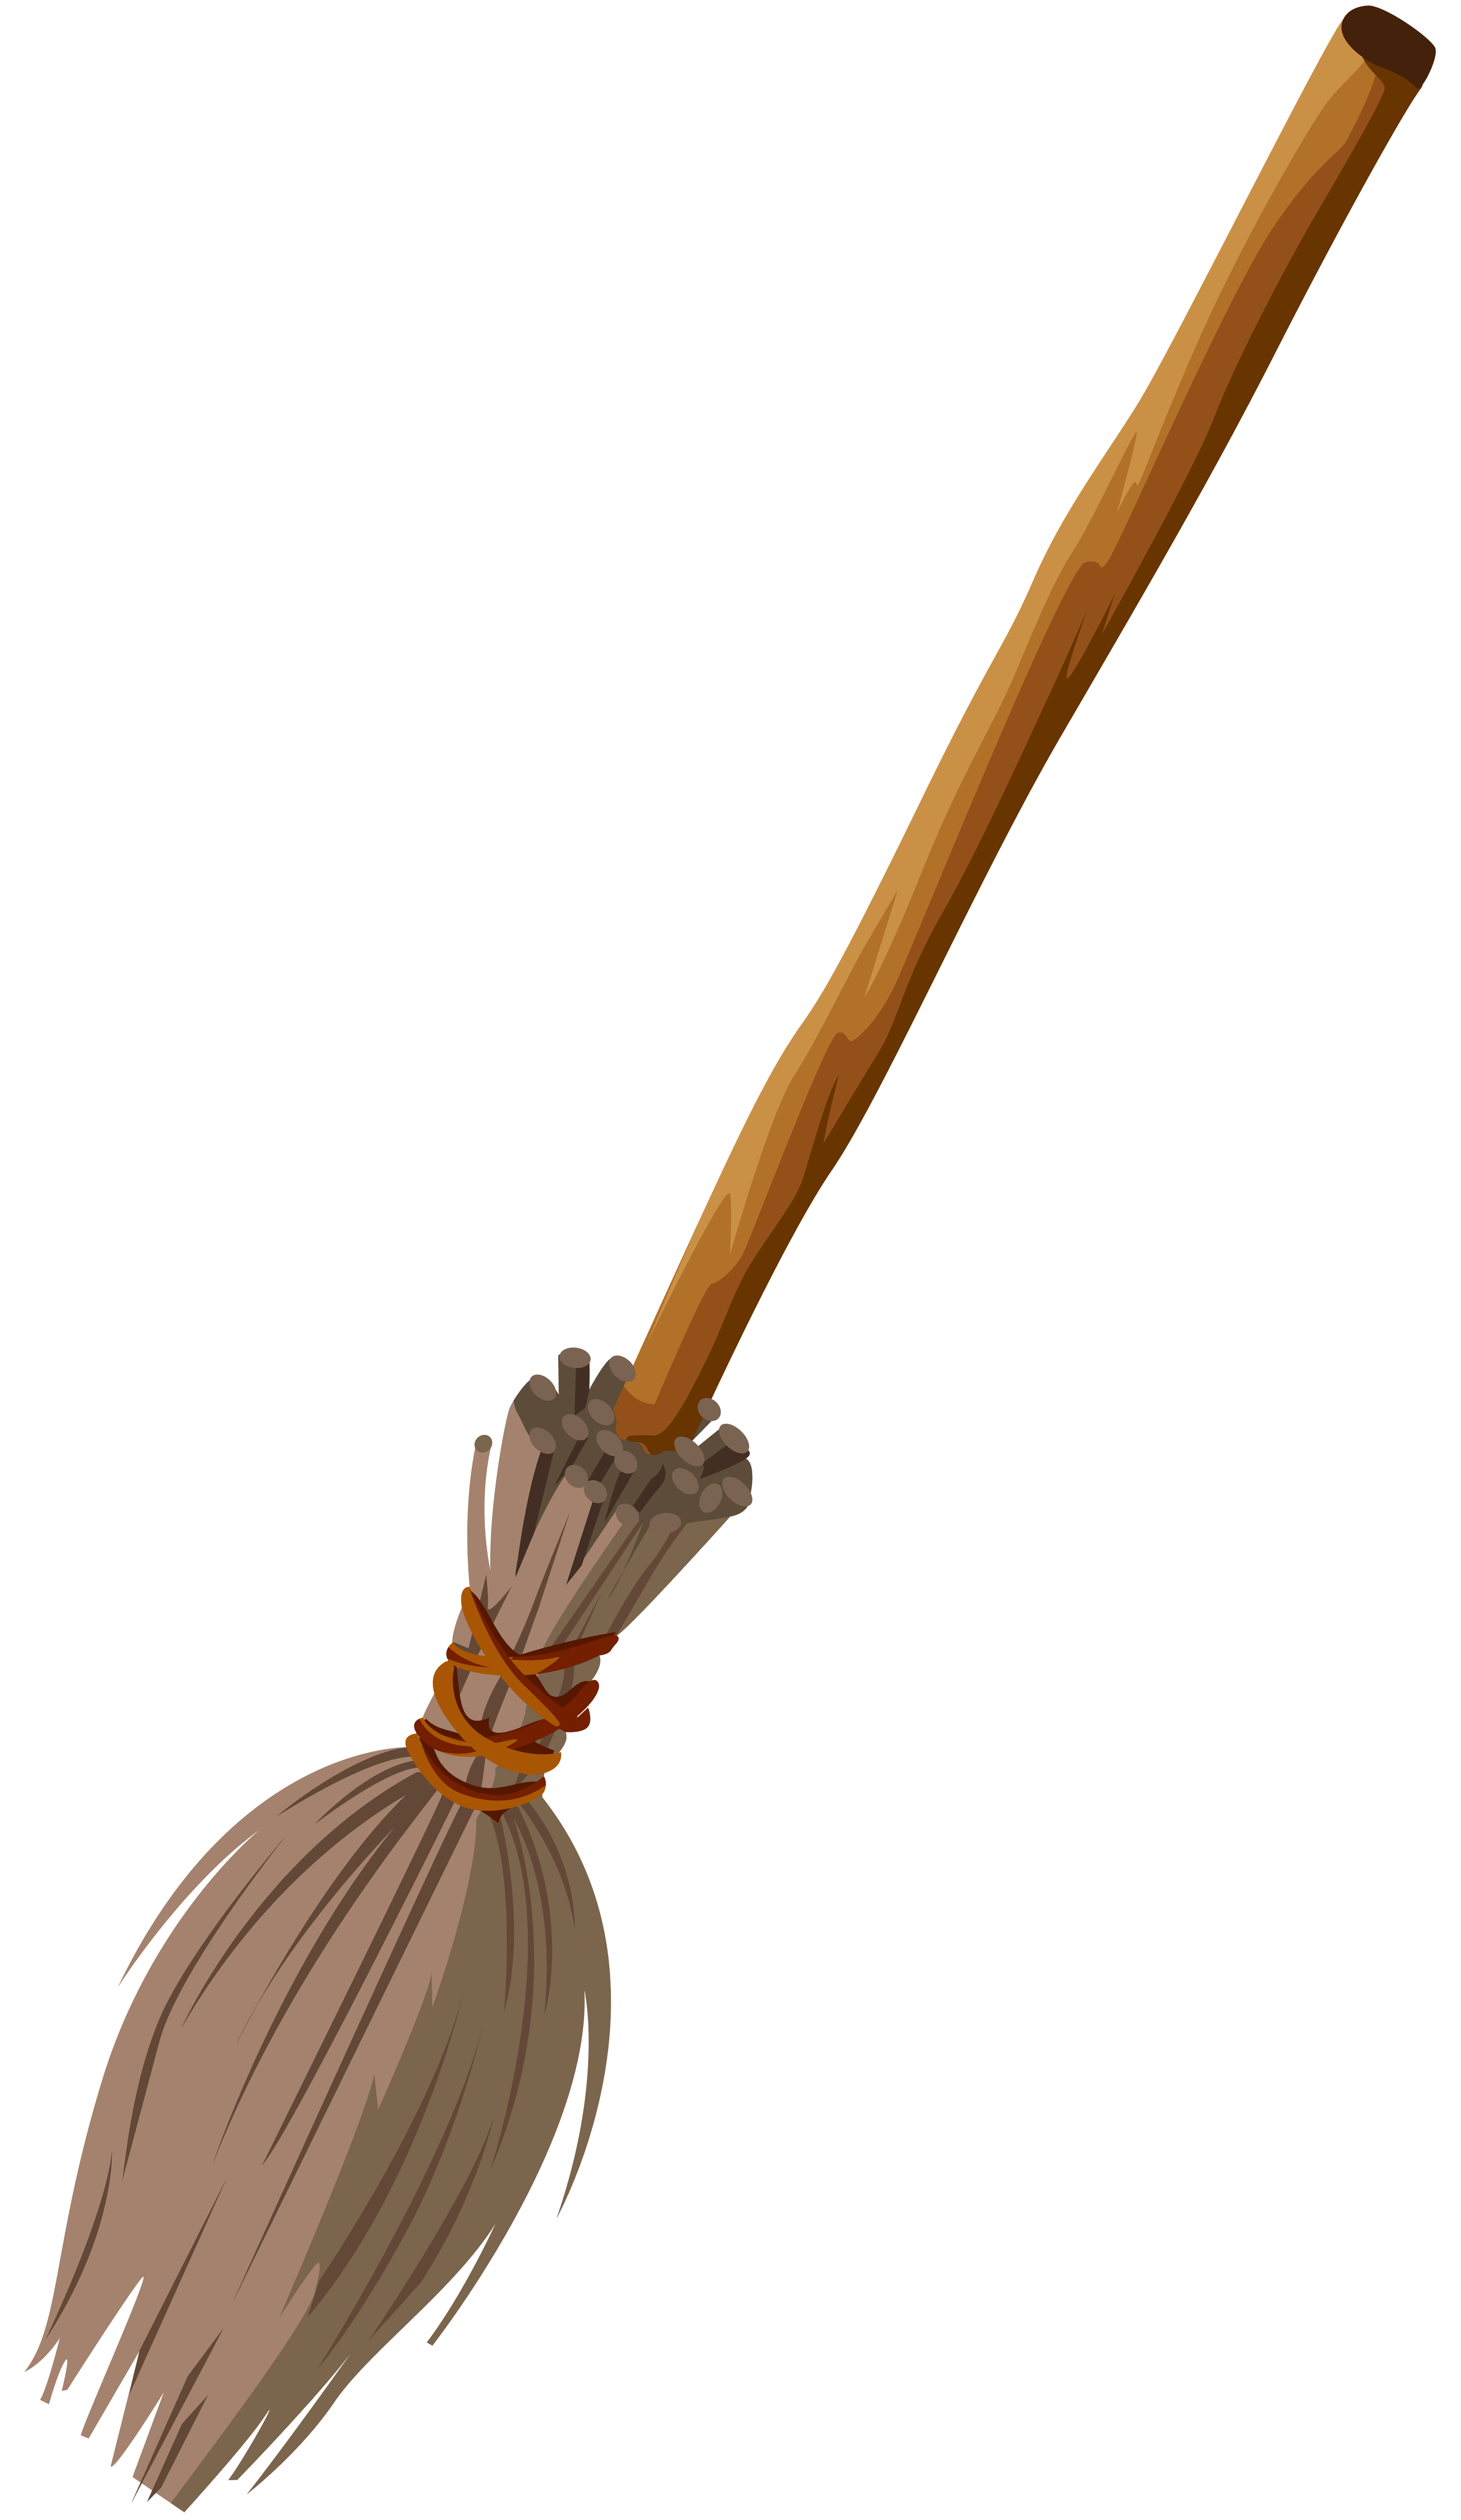 Transparent clip art png. Witch clipart broom